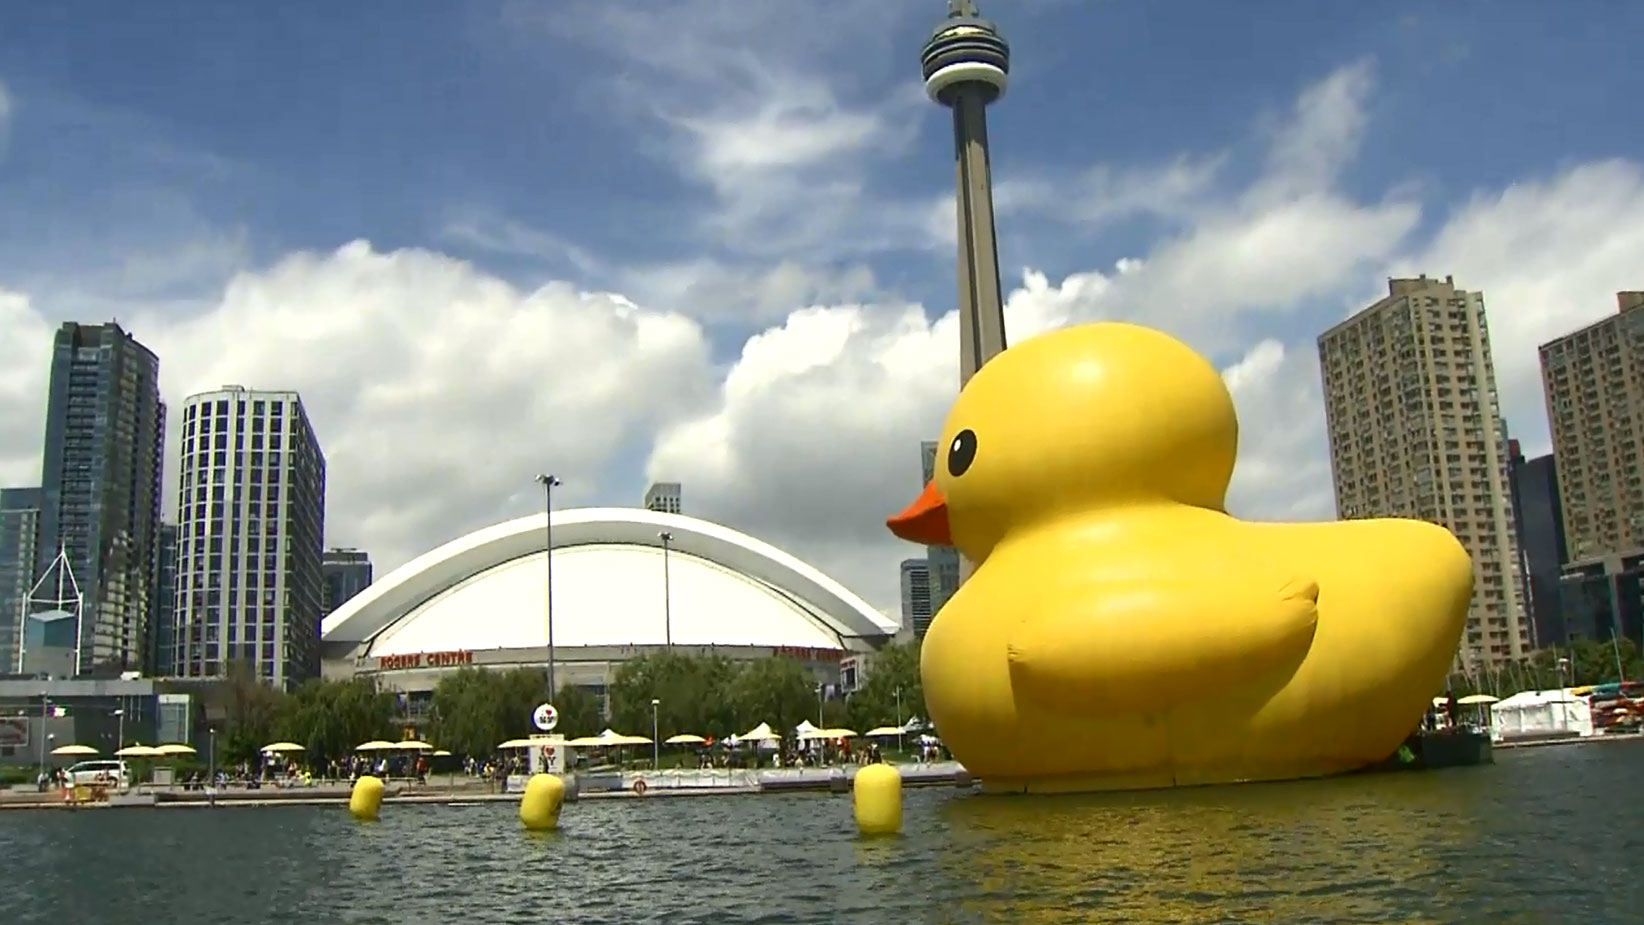 giant rubber duck wades into toronto after causing a flap